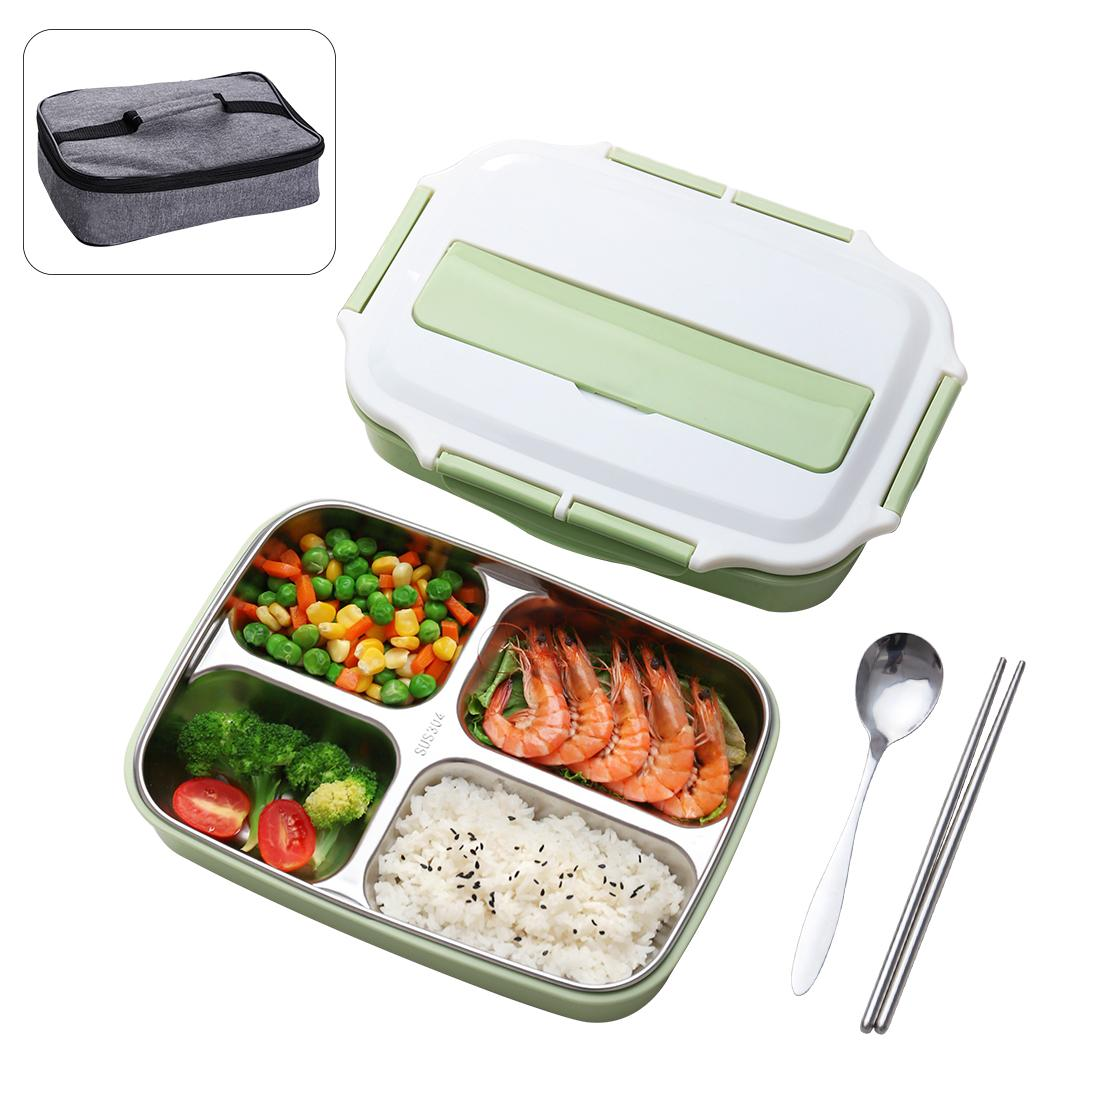 8f6d7d595a Thermal Lunch Box With Bag Set Stainless Steel Kid Adult Bento Boxs  Leakproof Japanese Food Container